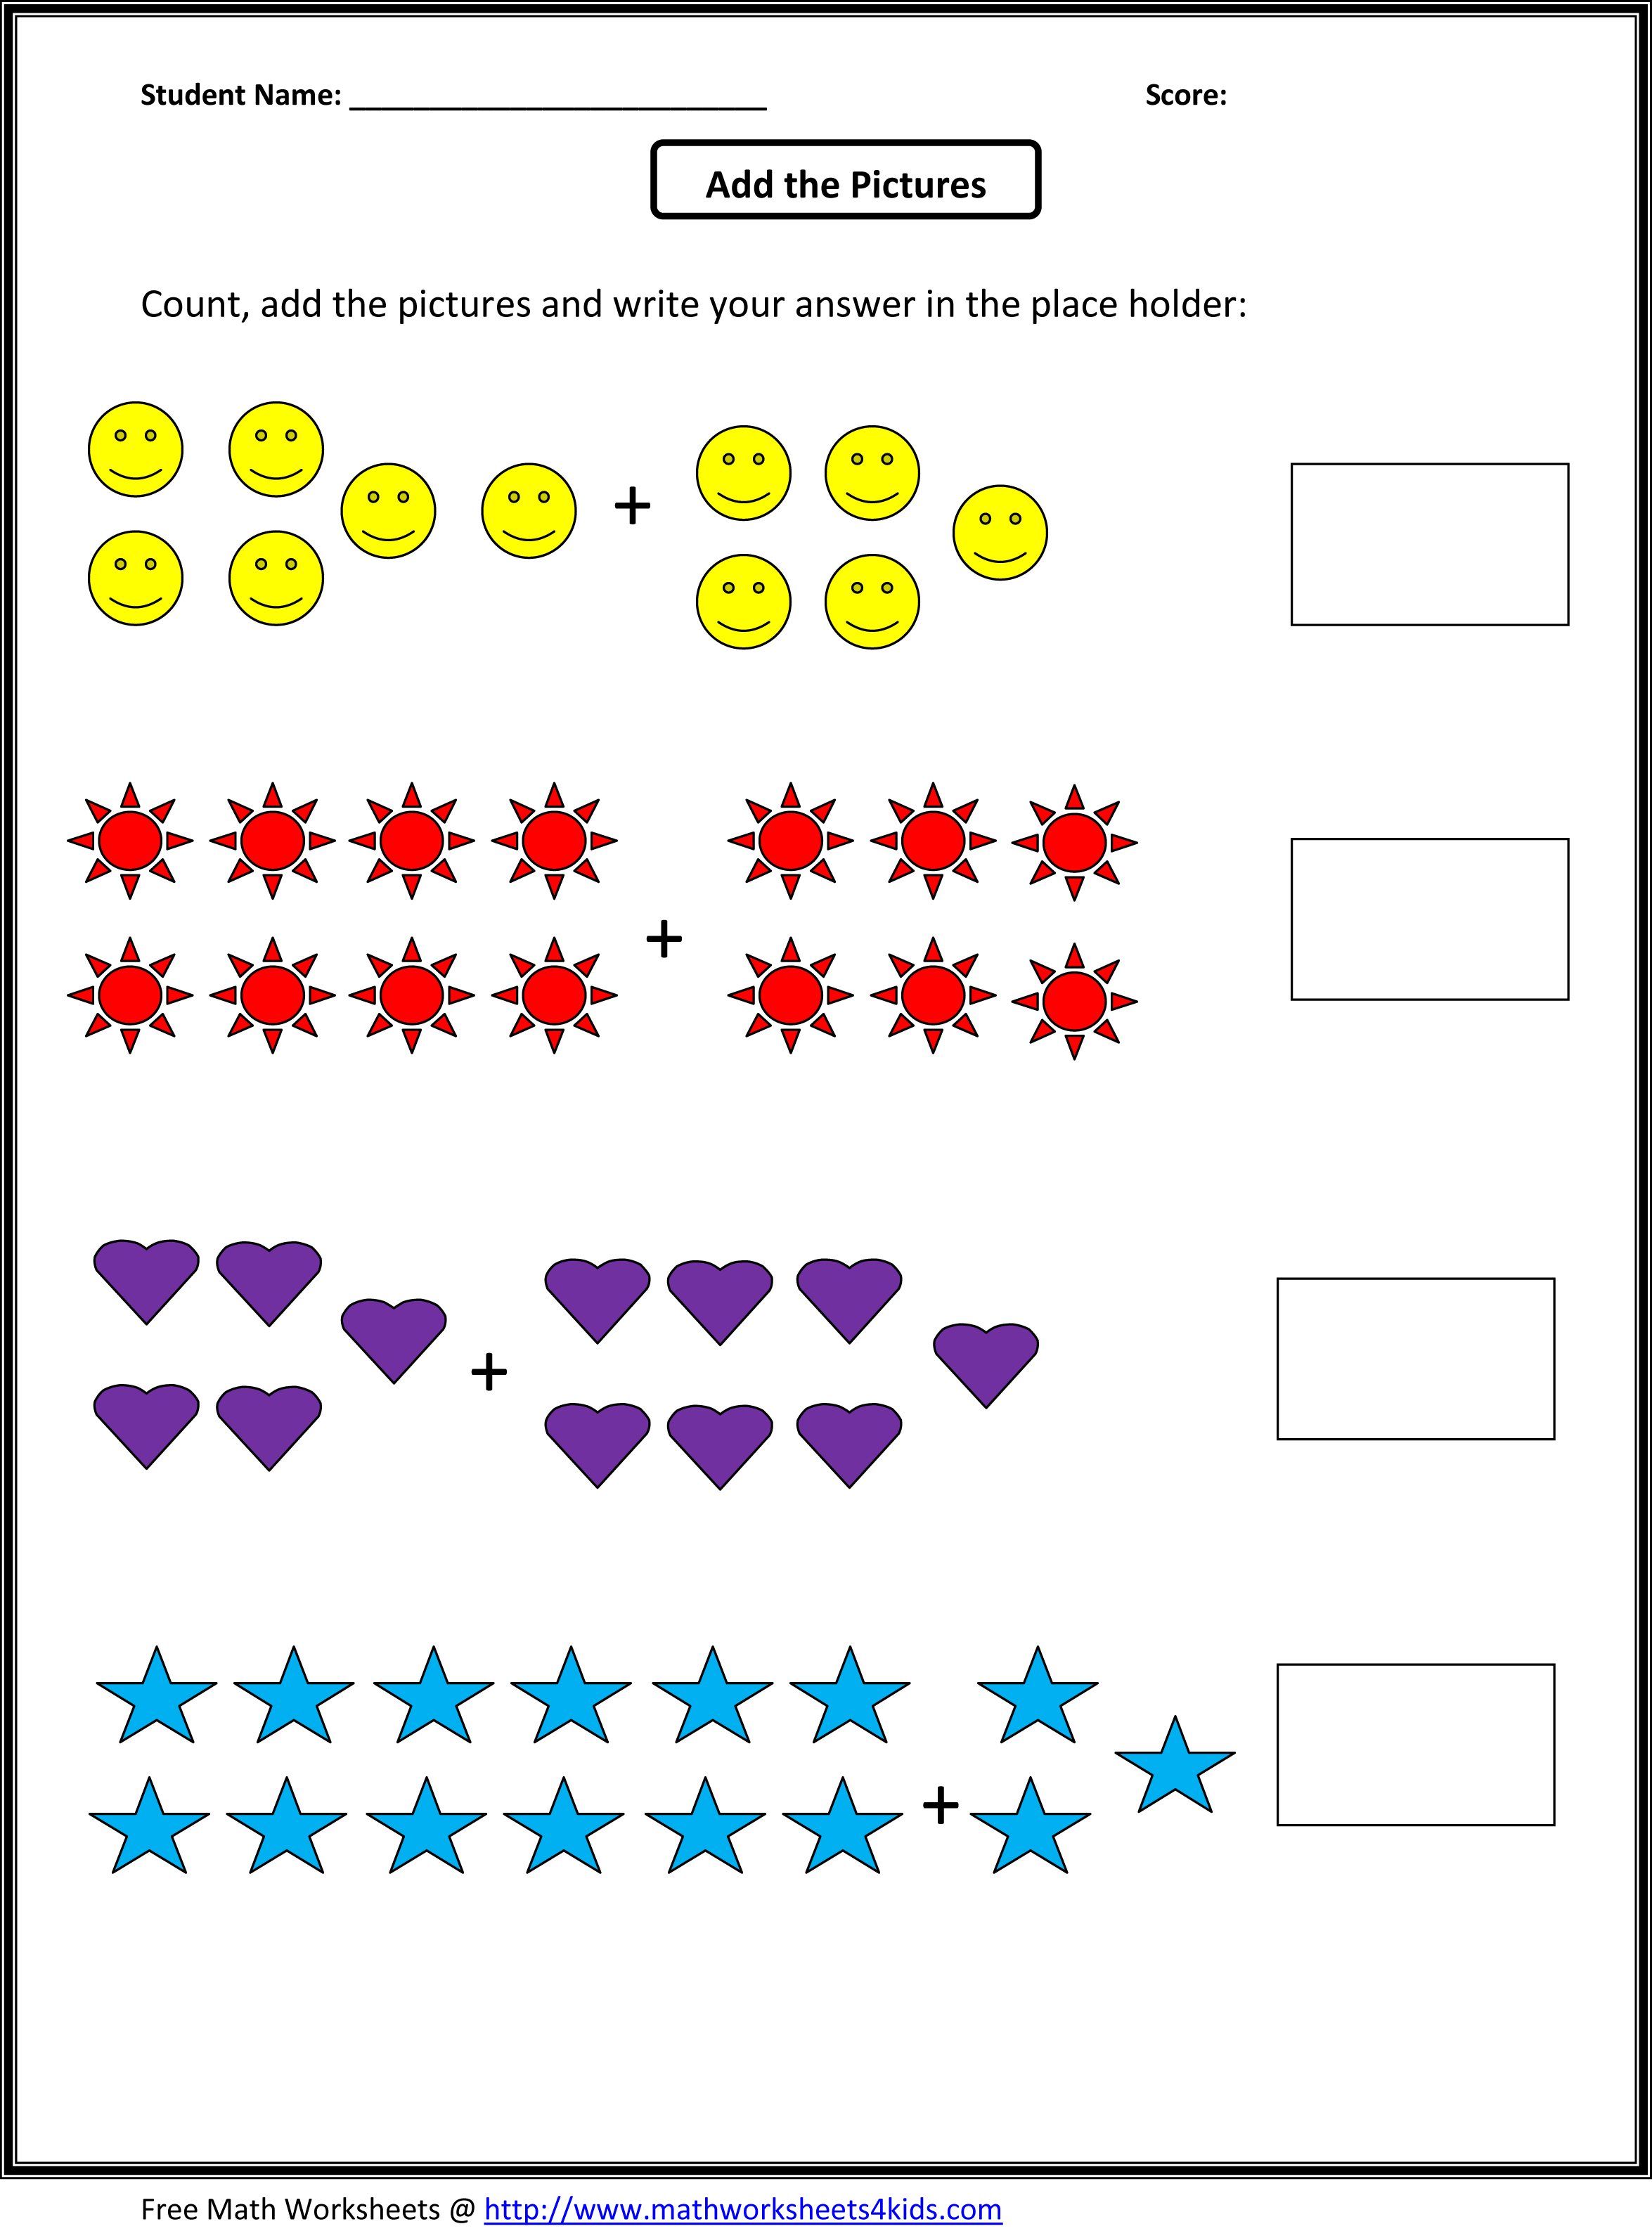 Weirdmailus  Unique Grade  Maths Worksheet  Reocurent With Fascinating Math Worksheets For St Grade Free  Reocurent With Astounding Simple Present Vs Present Continuous Worksheet Also Free Maths Printable Worksheets In Addition Counting In S Worksheets And Plant Roots Worksheet As Well As Math Sixth Grade Worksheets Additionally Printable Worksheets For Grade  English From Reocurentcom With Weirdmailus  Fascinating Grade  Maths Worksheet  Reocurent With Astounding Math Worksheets For St Grade Free  Reocurent And Unique Simple Present Vs Present Continuous Worksheet Also Free Maths Printable Worksheets In Addition Counting In S Worksheets From Reocurentcom